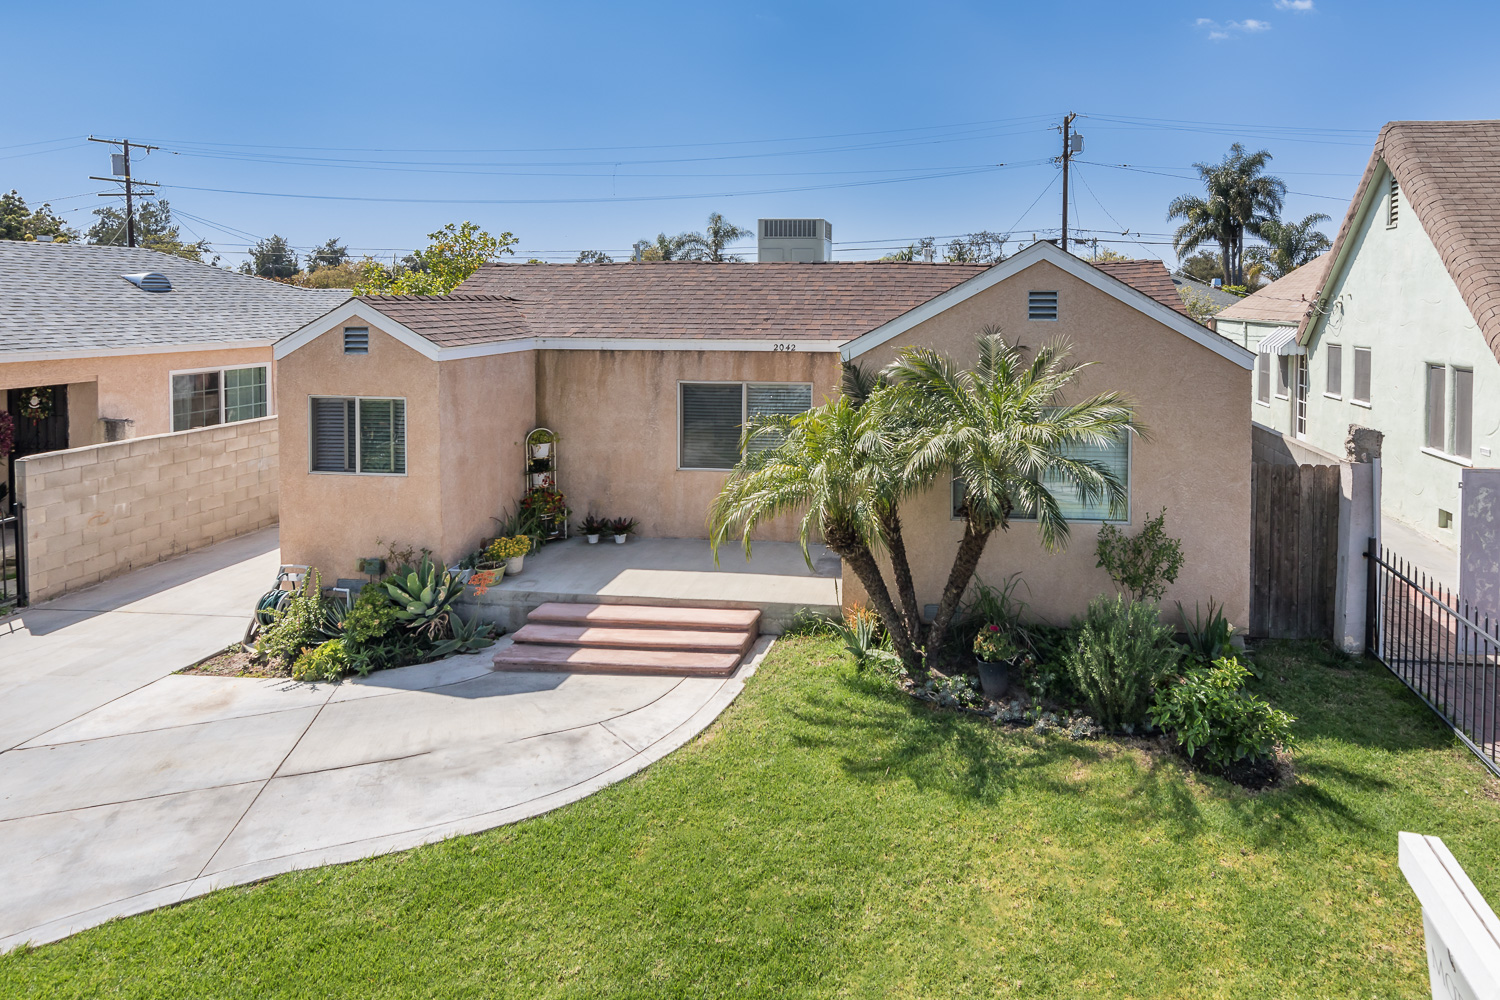 12022 Horton Avenue, Downey, California